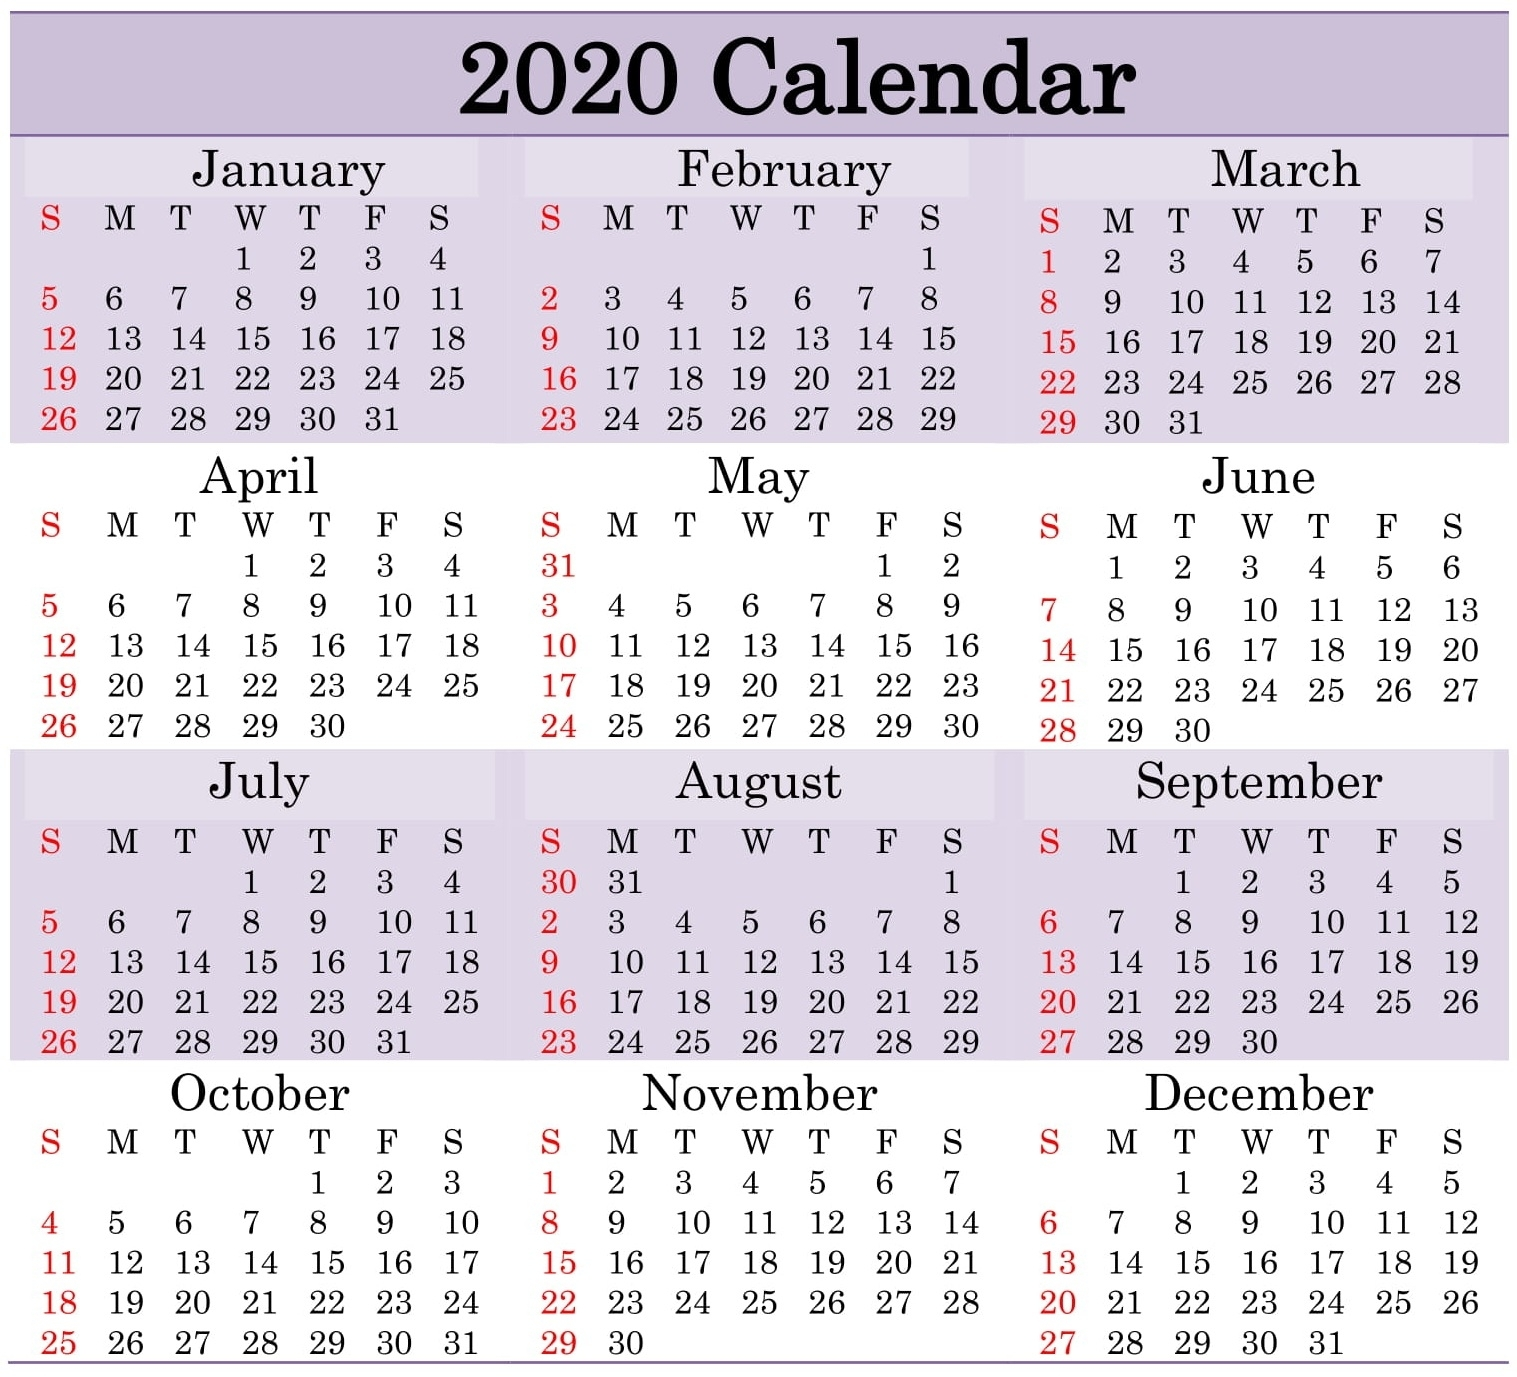 Get Annual Calendar By Month With Julian Dates